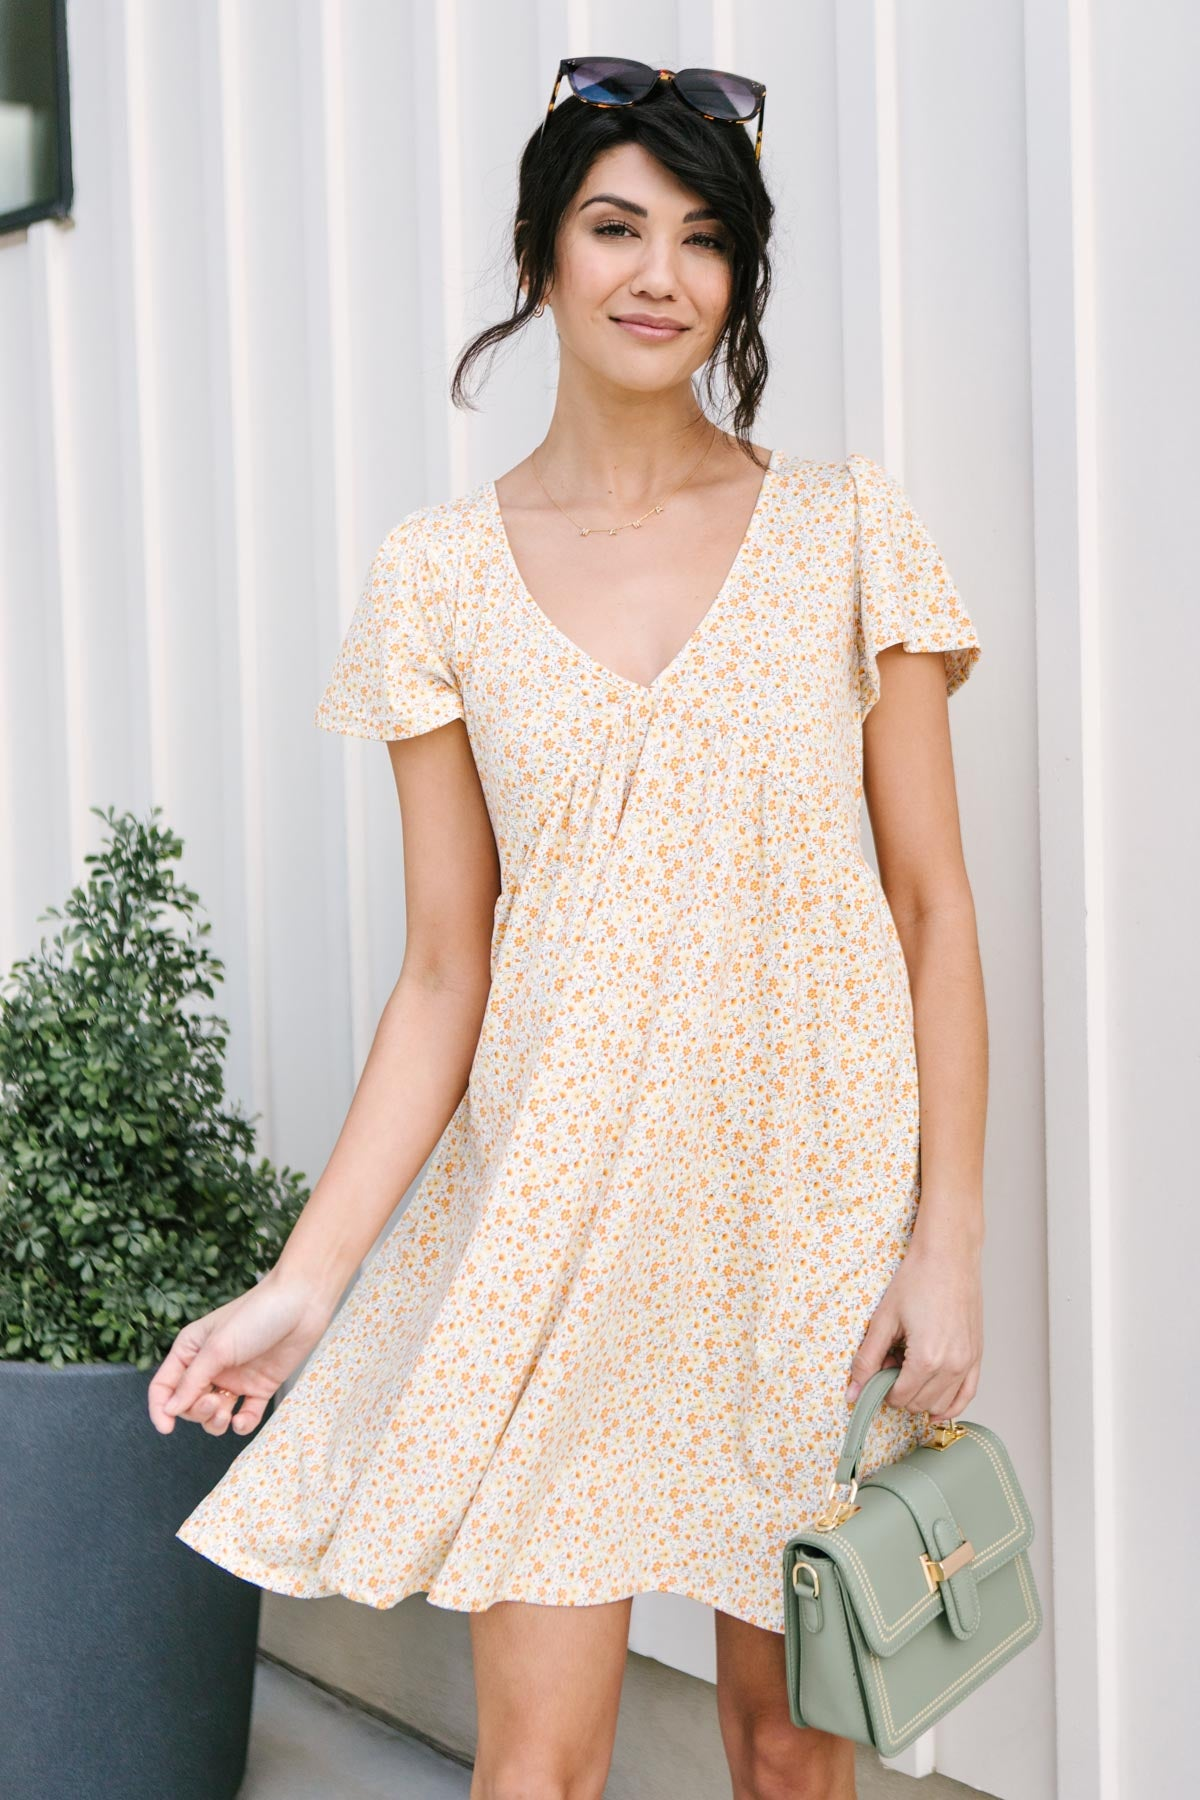 Freshly Picked Floral Dress in Yellow-[option4]-[option5]-[option6]-[option7]-[option8]-Womens-Clothing-Shop